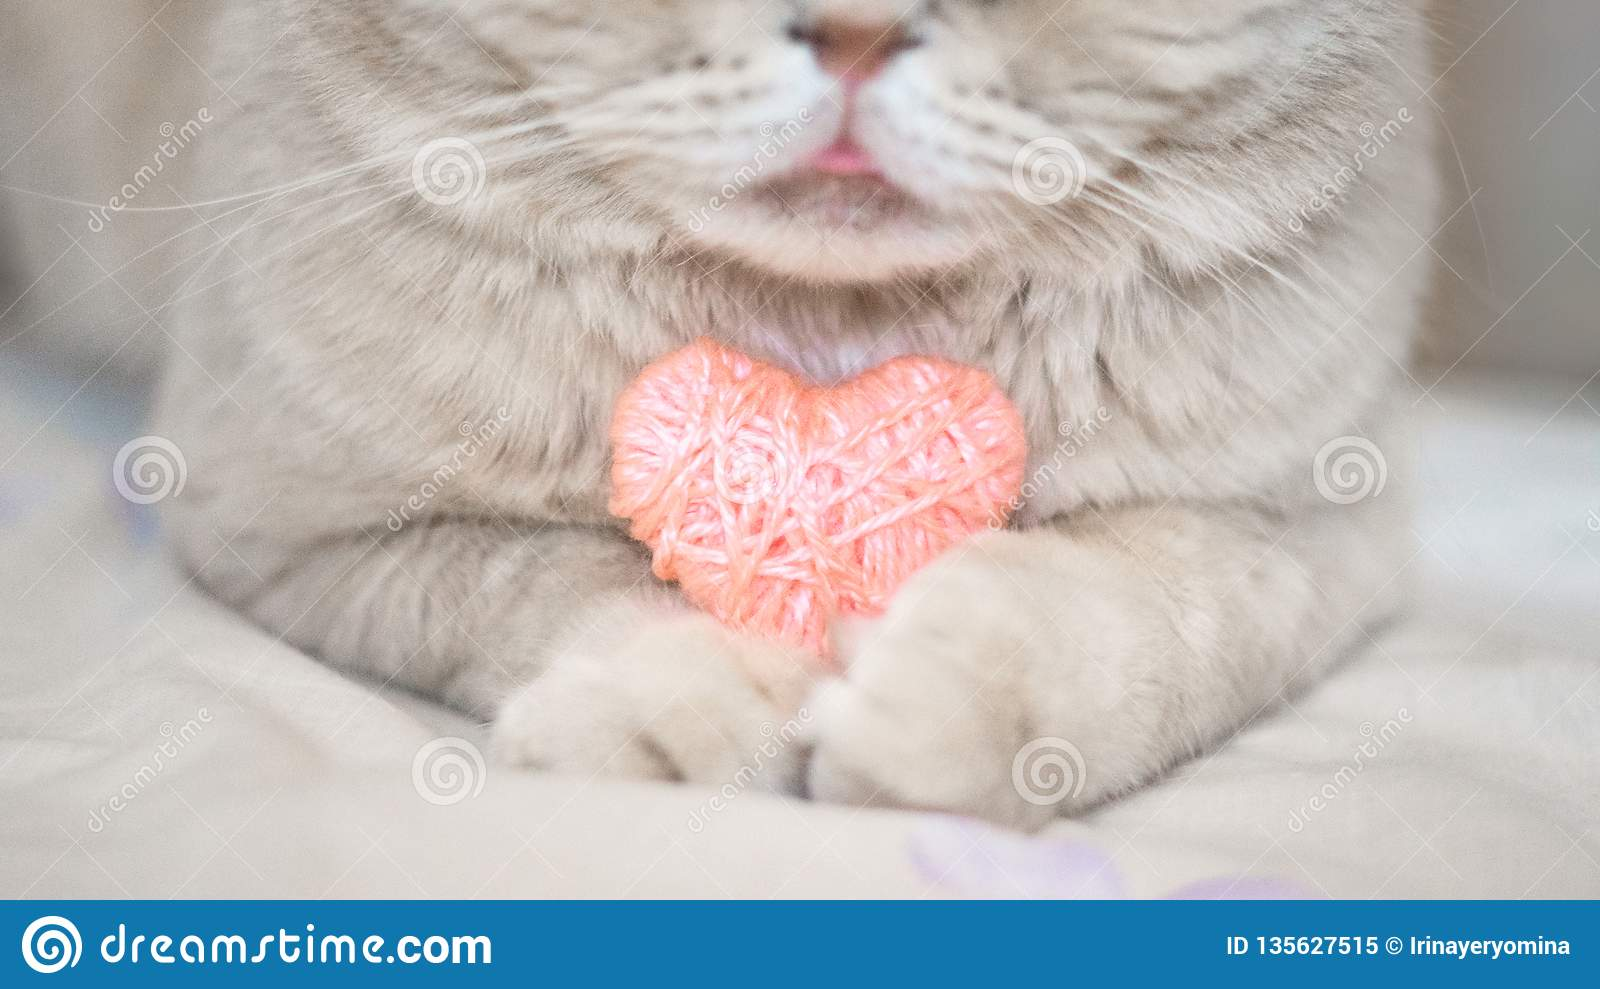 Cosiness, love, Valentine s Day concept. Pink heart in the paws of cat close up. The Scottish cream tabby cat with pink heart in